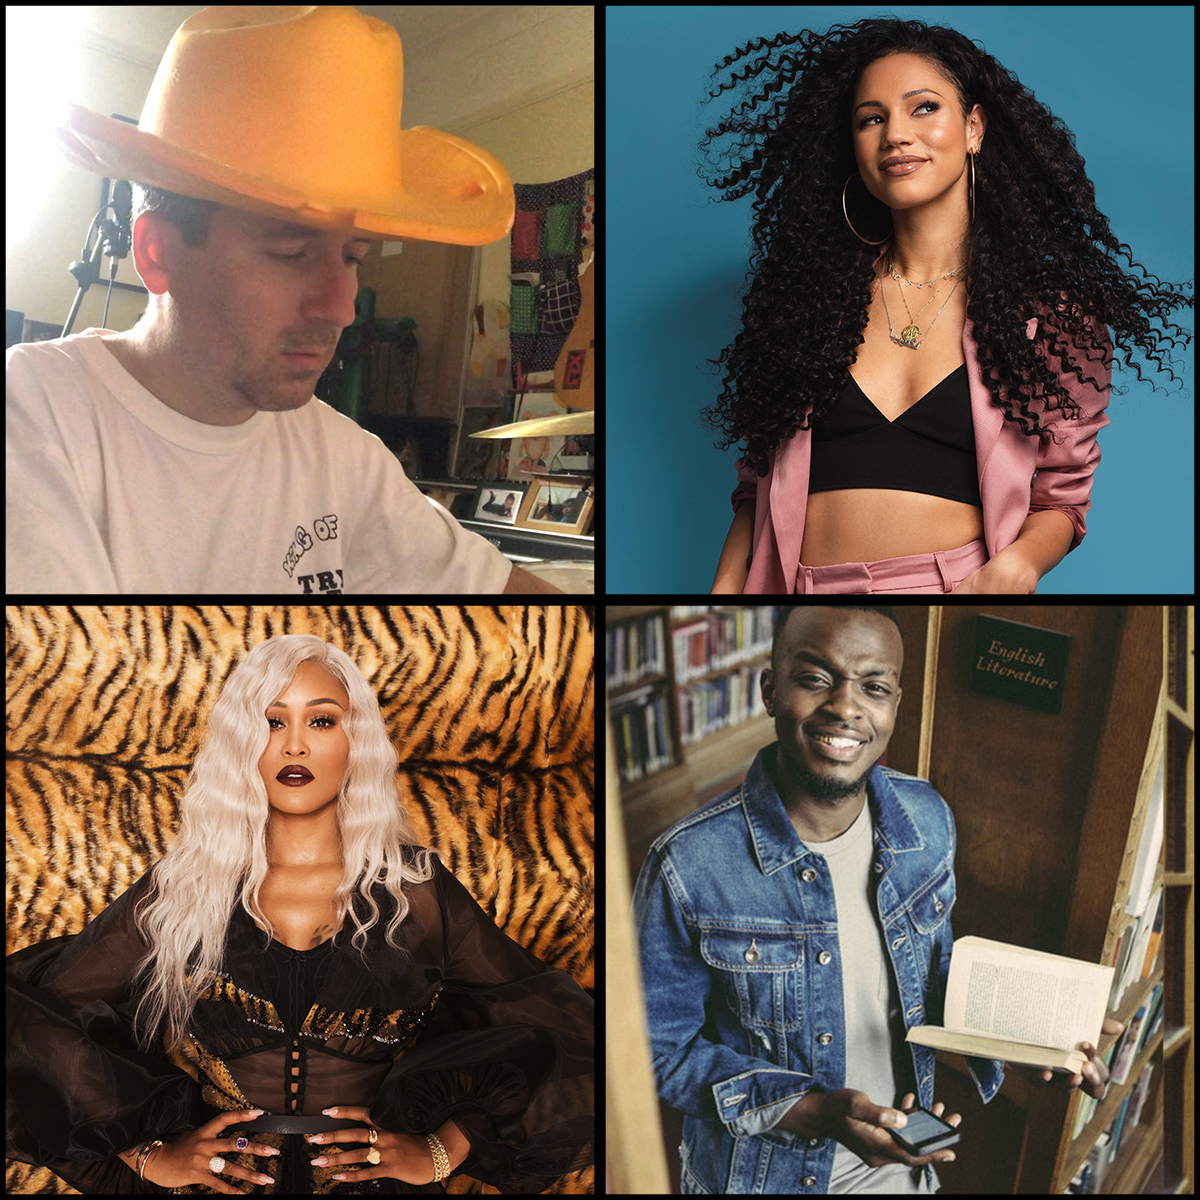 Youth Music Judges: Alexis Taylor, Vick Hope, Eve, George the Poet